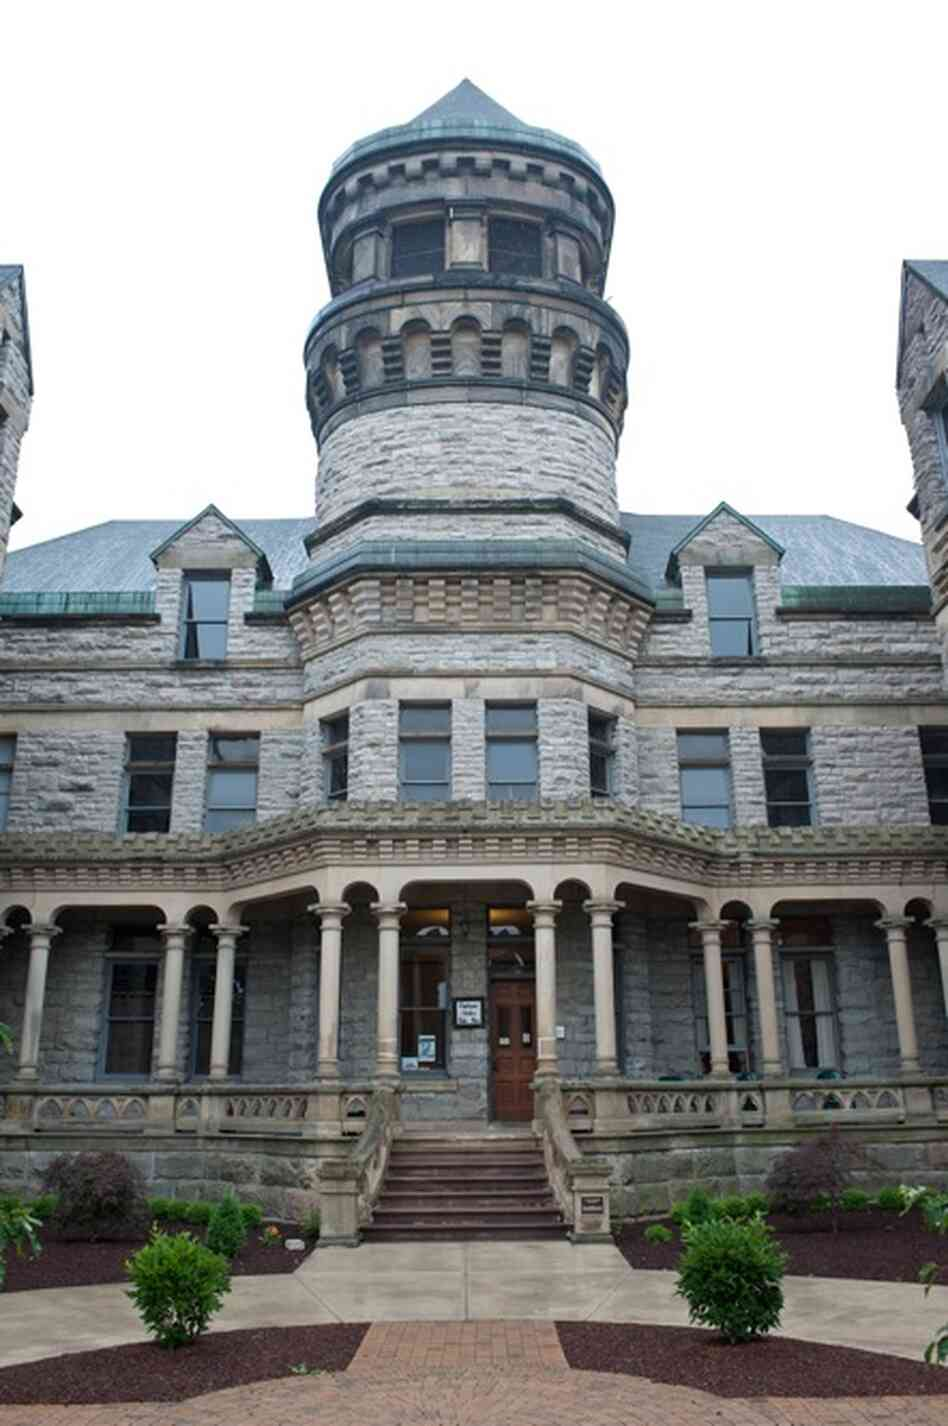 For nearly a century, the Ohio State Reformatory housed roughly 155,000 inmates. Few if any got to use this, the reformatory's front door.